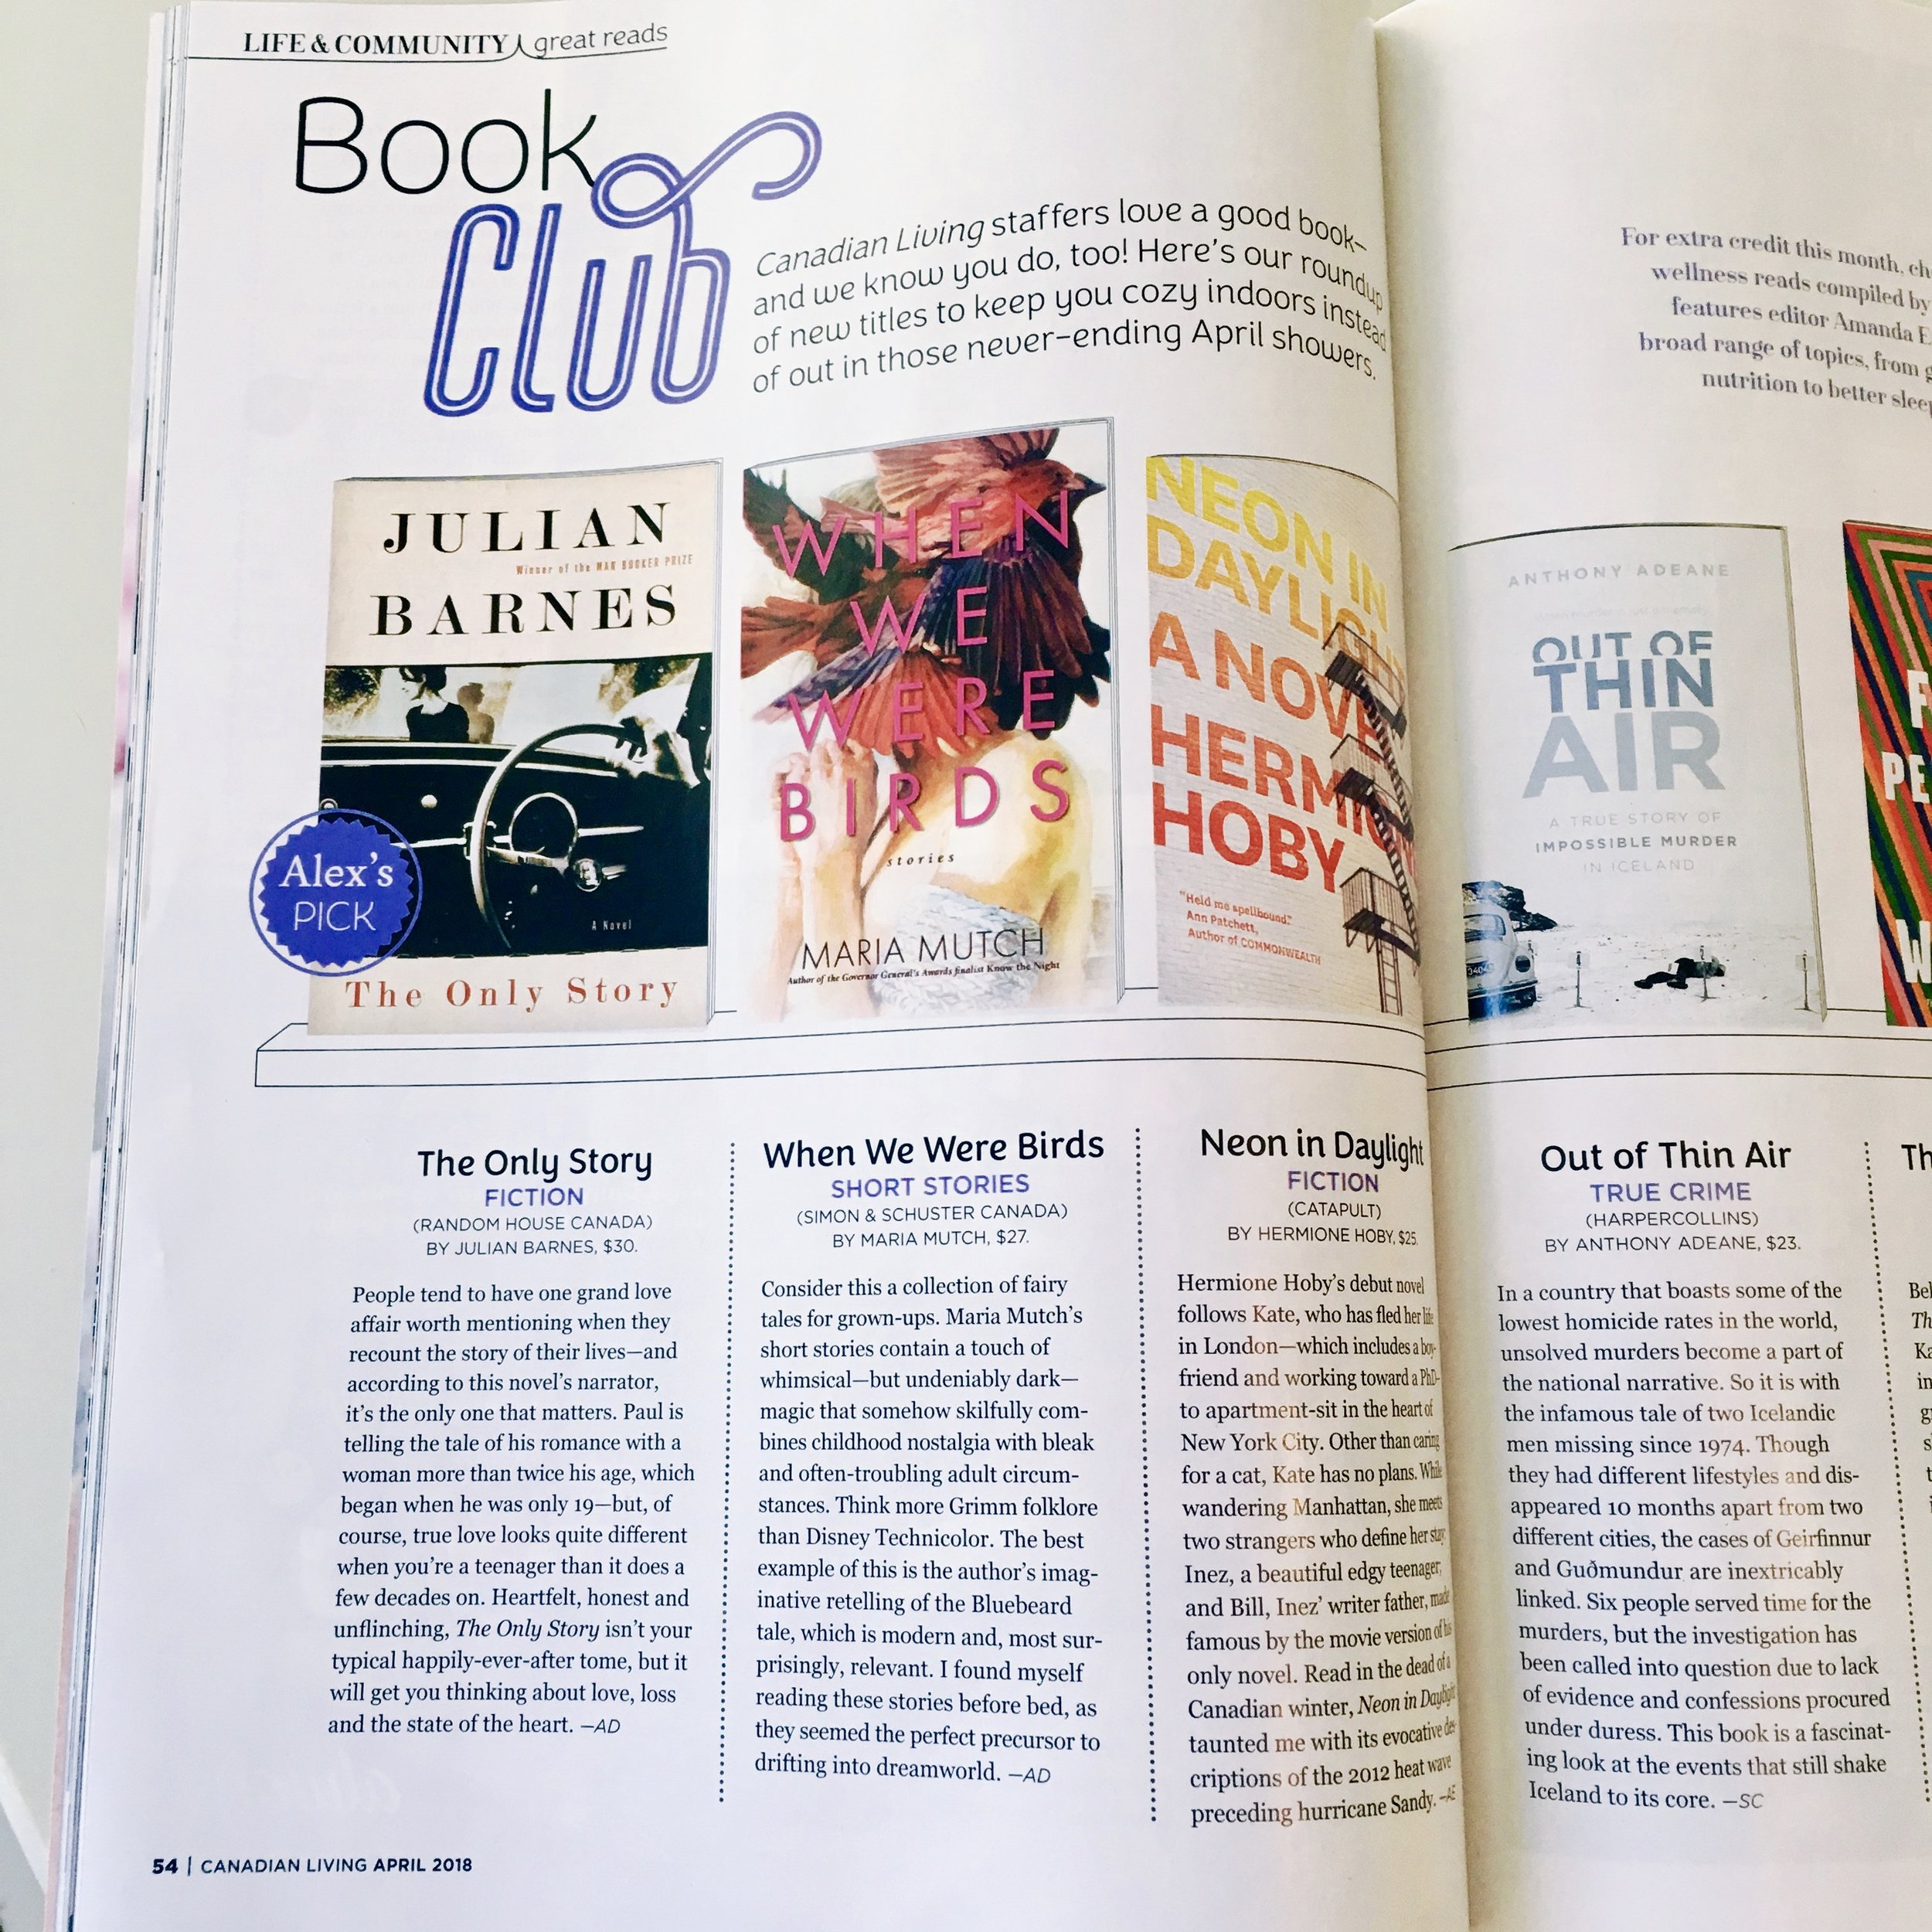 from CANADIAN LIVING MAGAZINE's Book Club - APRIL, 2018